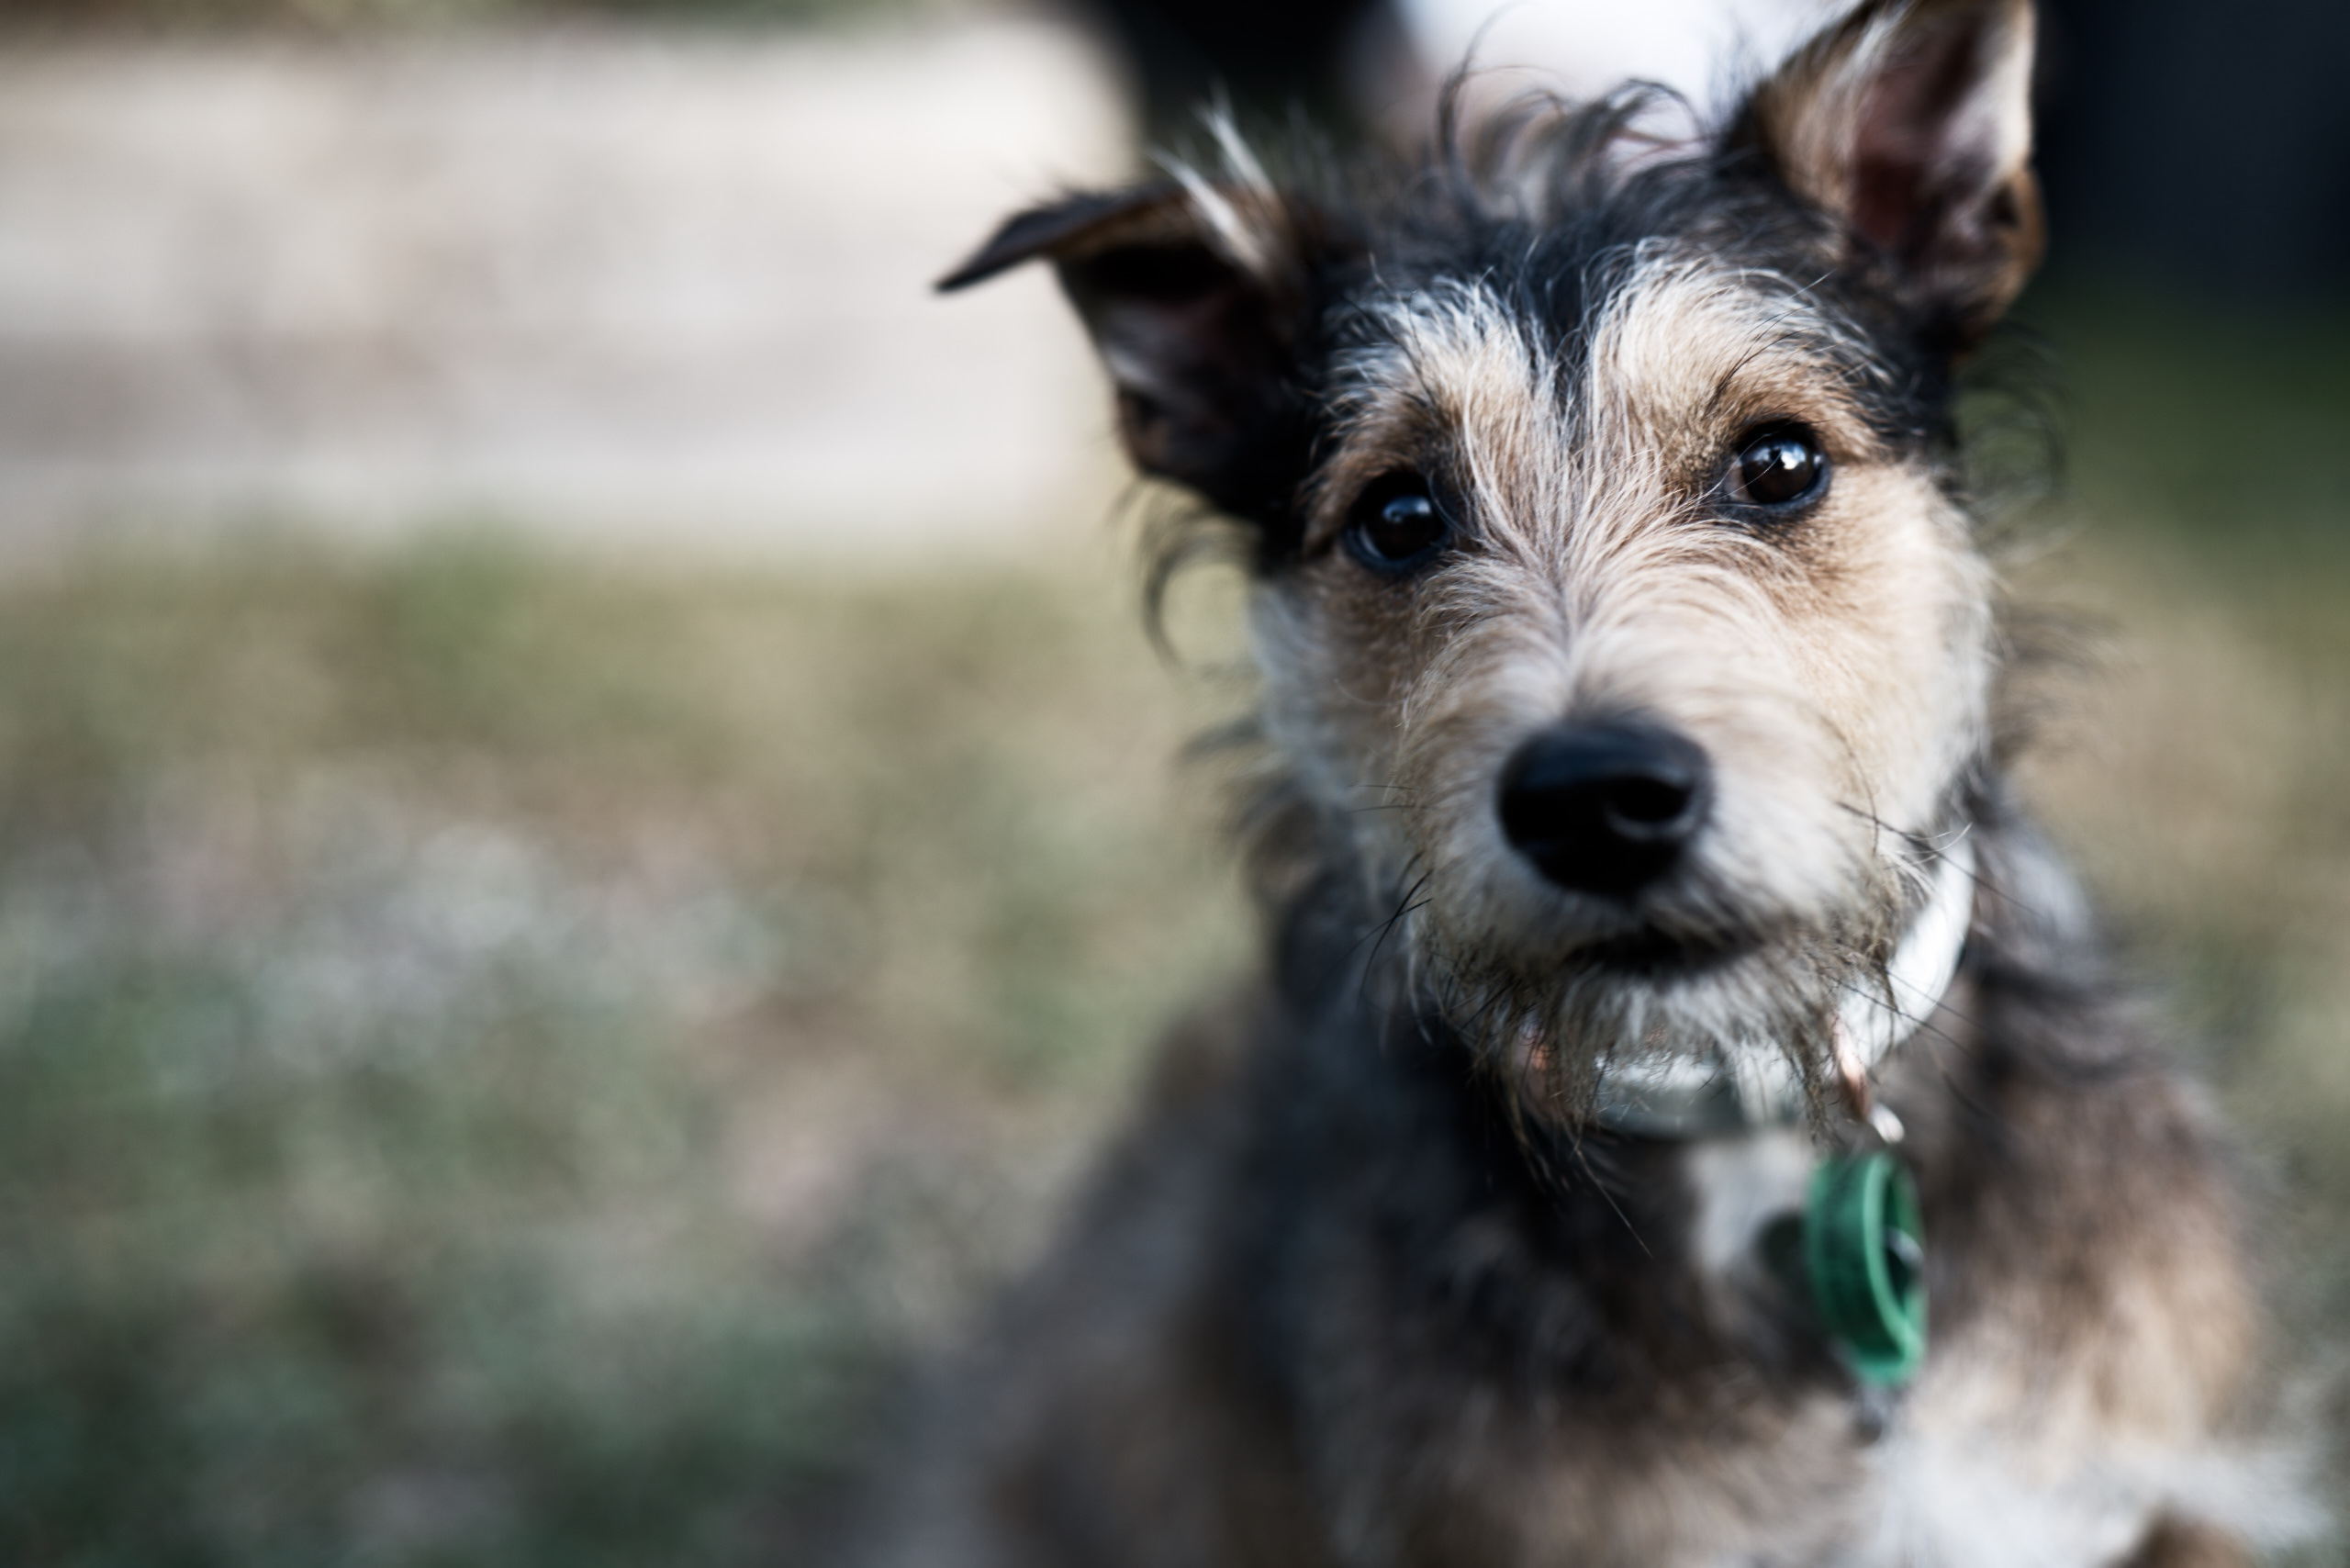 DDB LAUNCHES CAMPAIGN FOR NEW ZEALAND'S NEWEST CHARITY PET REFUGE; HITS FUNDING TARGET IN 7 DAYS